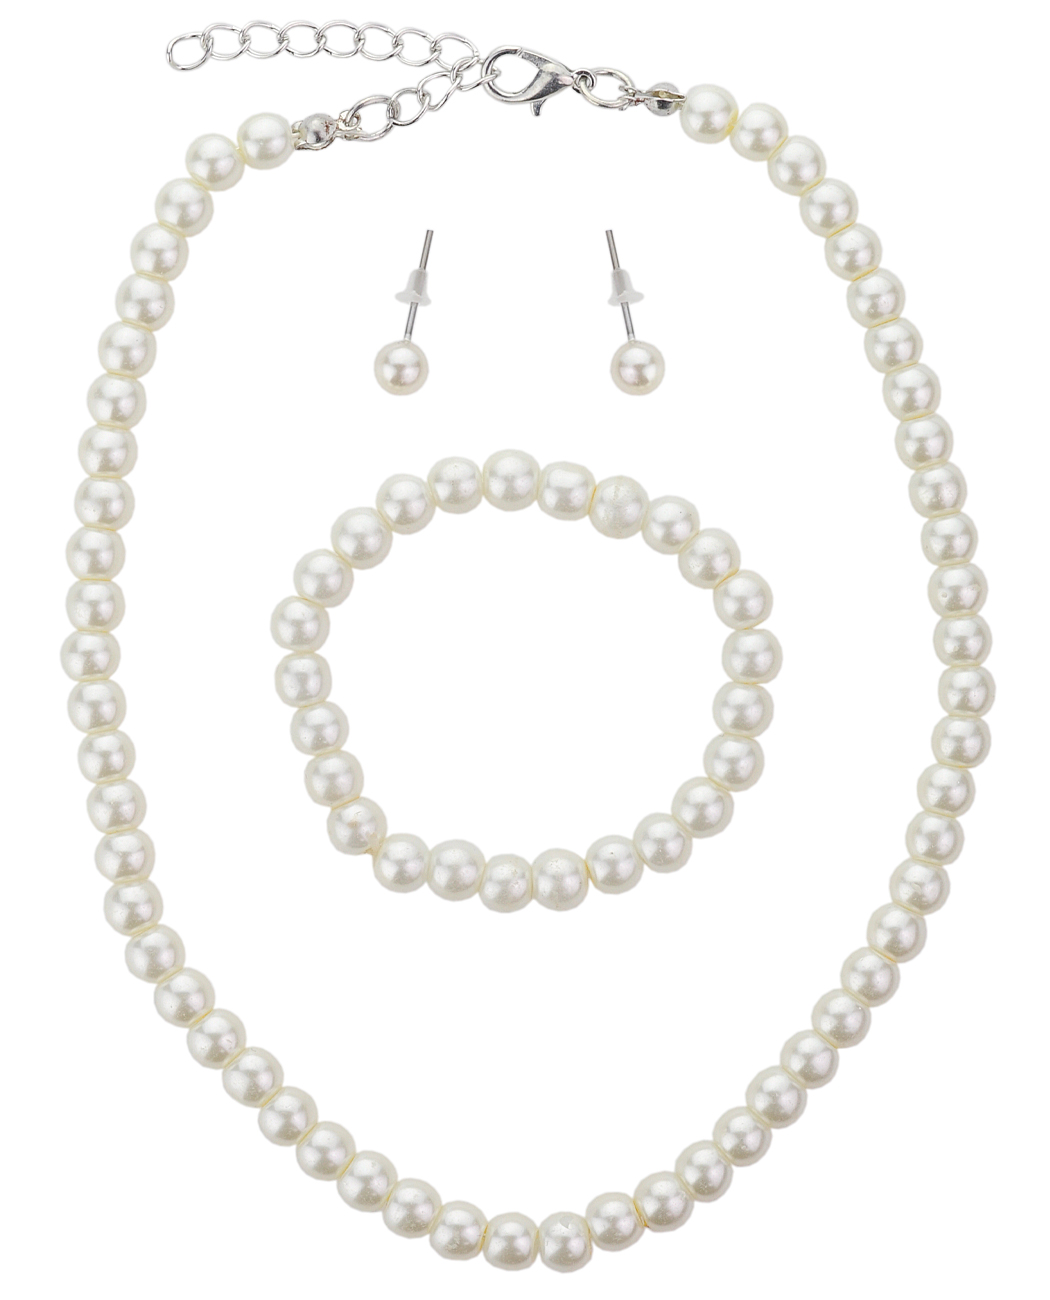 Girl's Simulated Pearl Necklace with Stretch Bracelet & Ball Stud Earrings, Cream